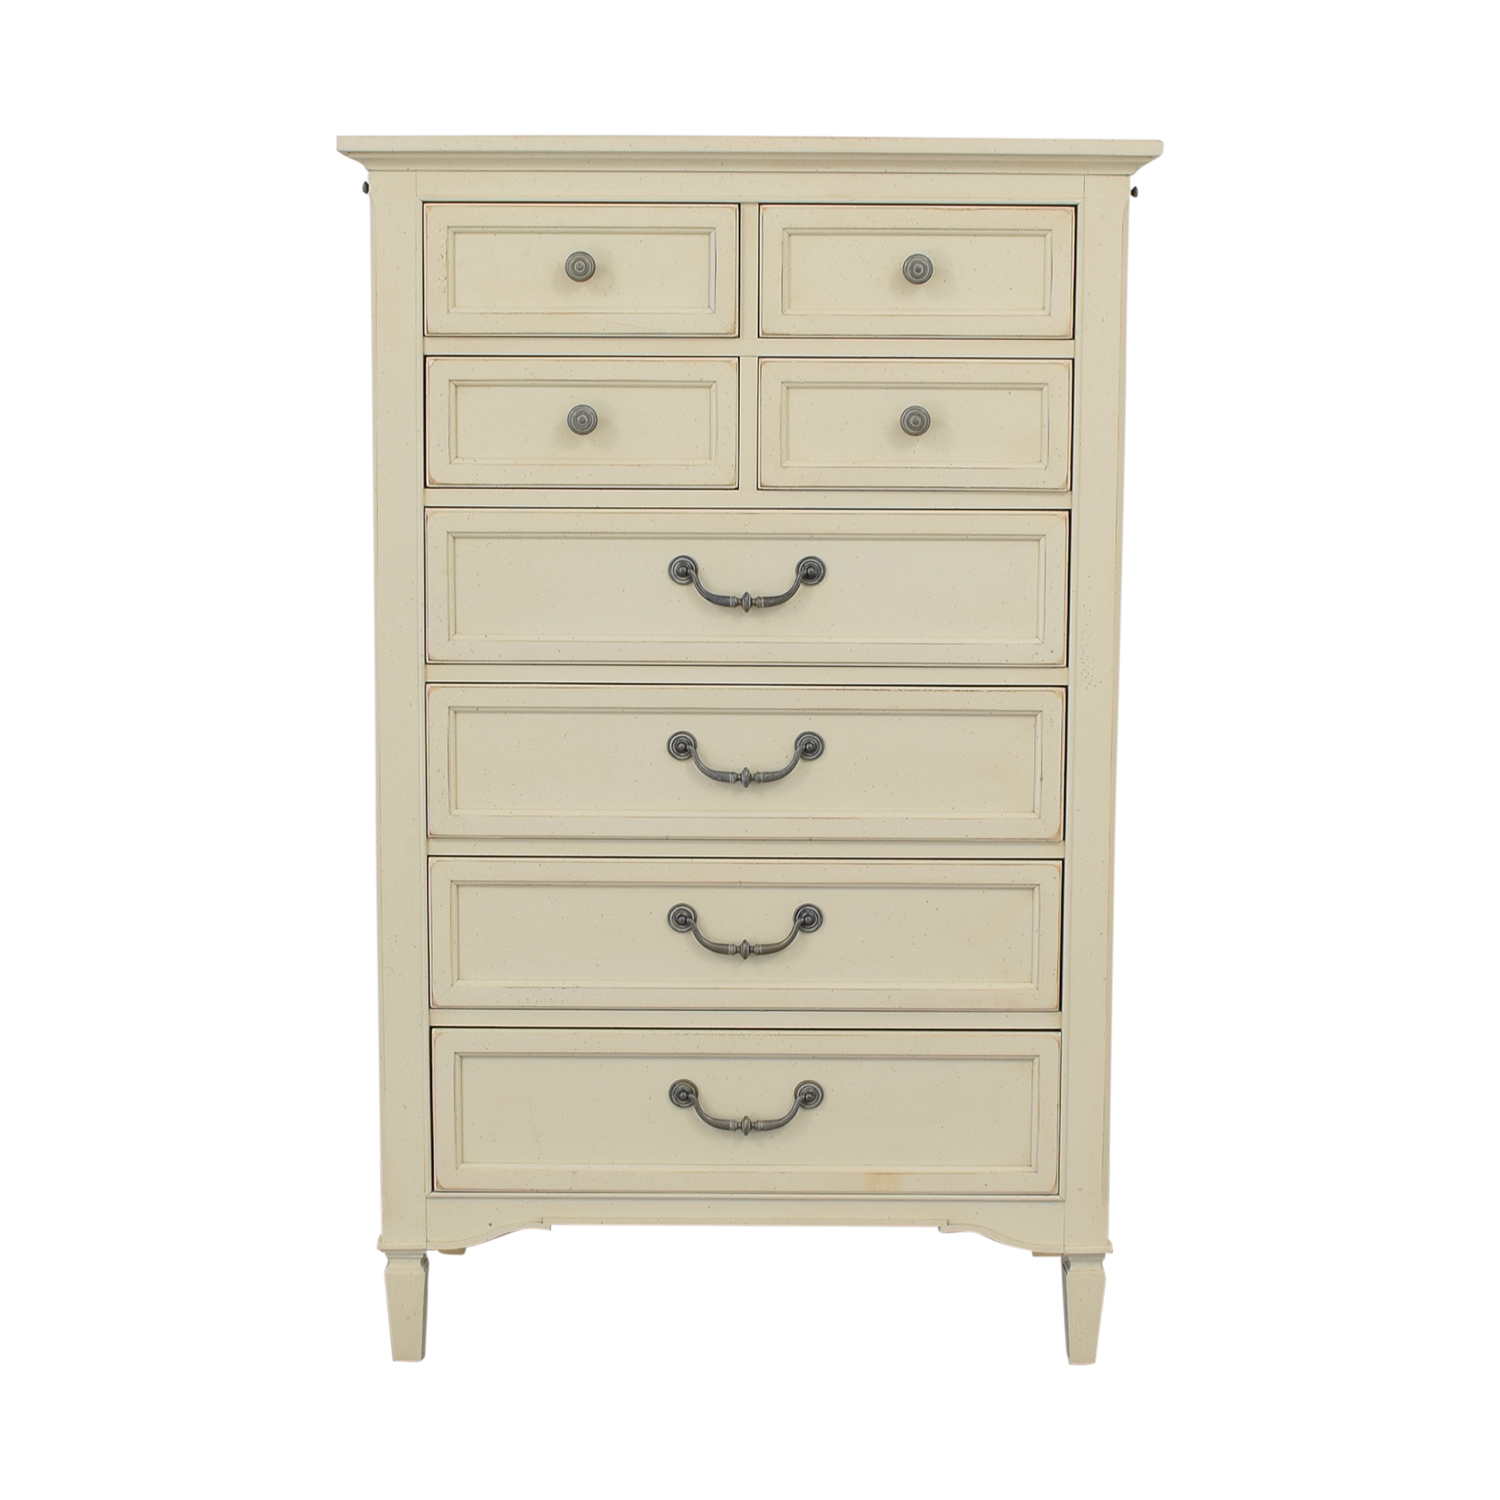 Stanley Furniture Stanley Furniture Eight-Drawer Off-White Tall Dresser coupon